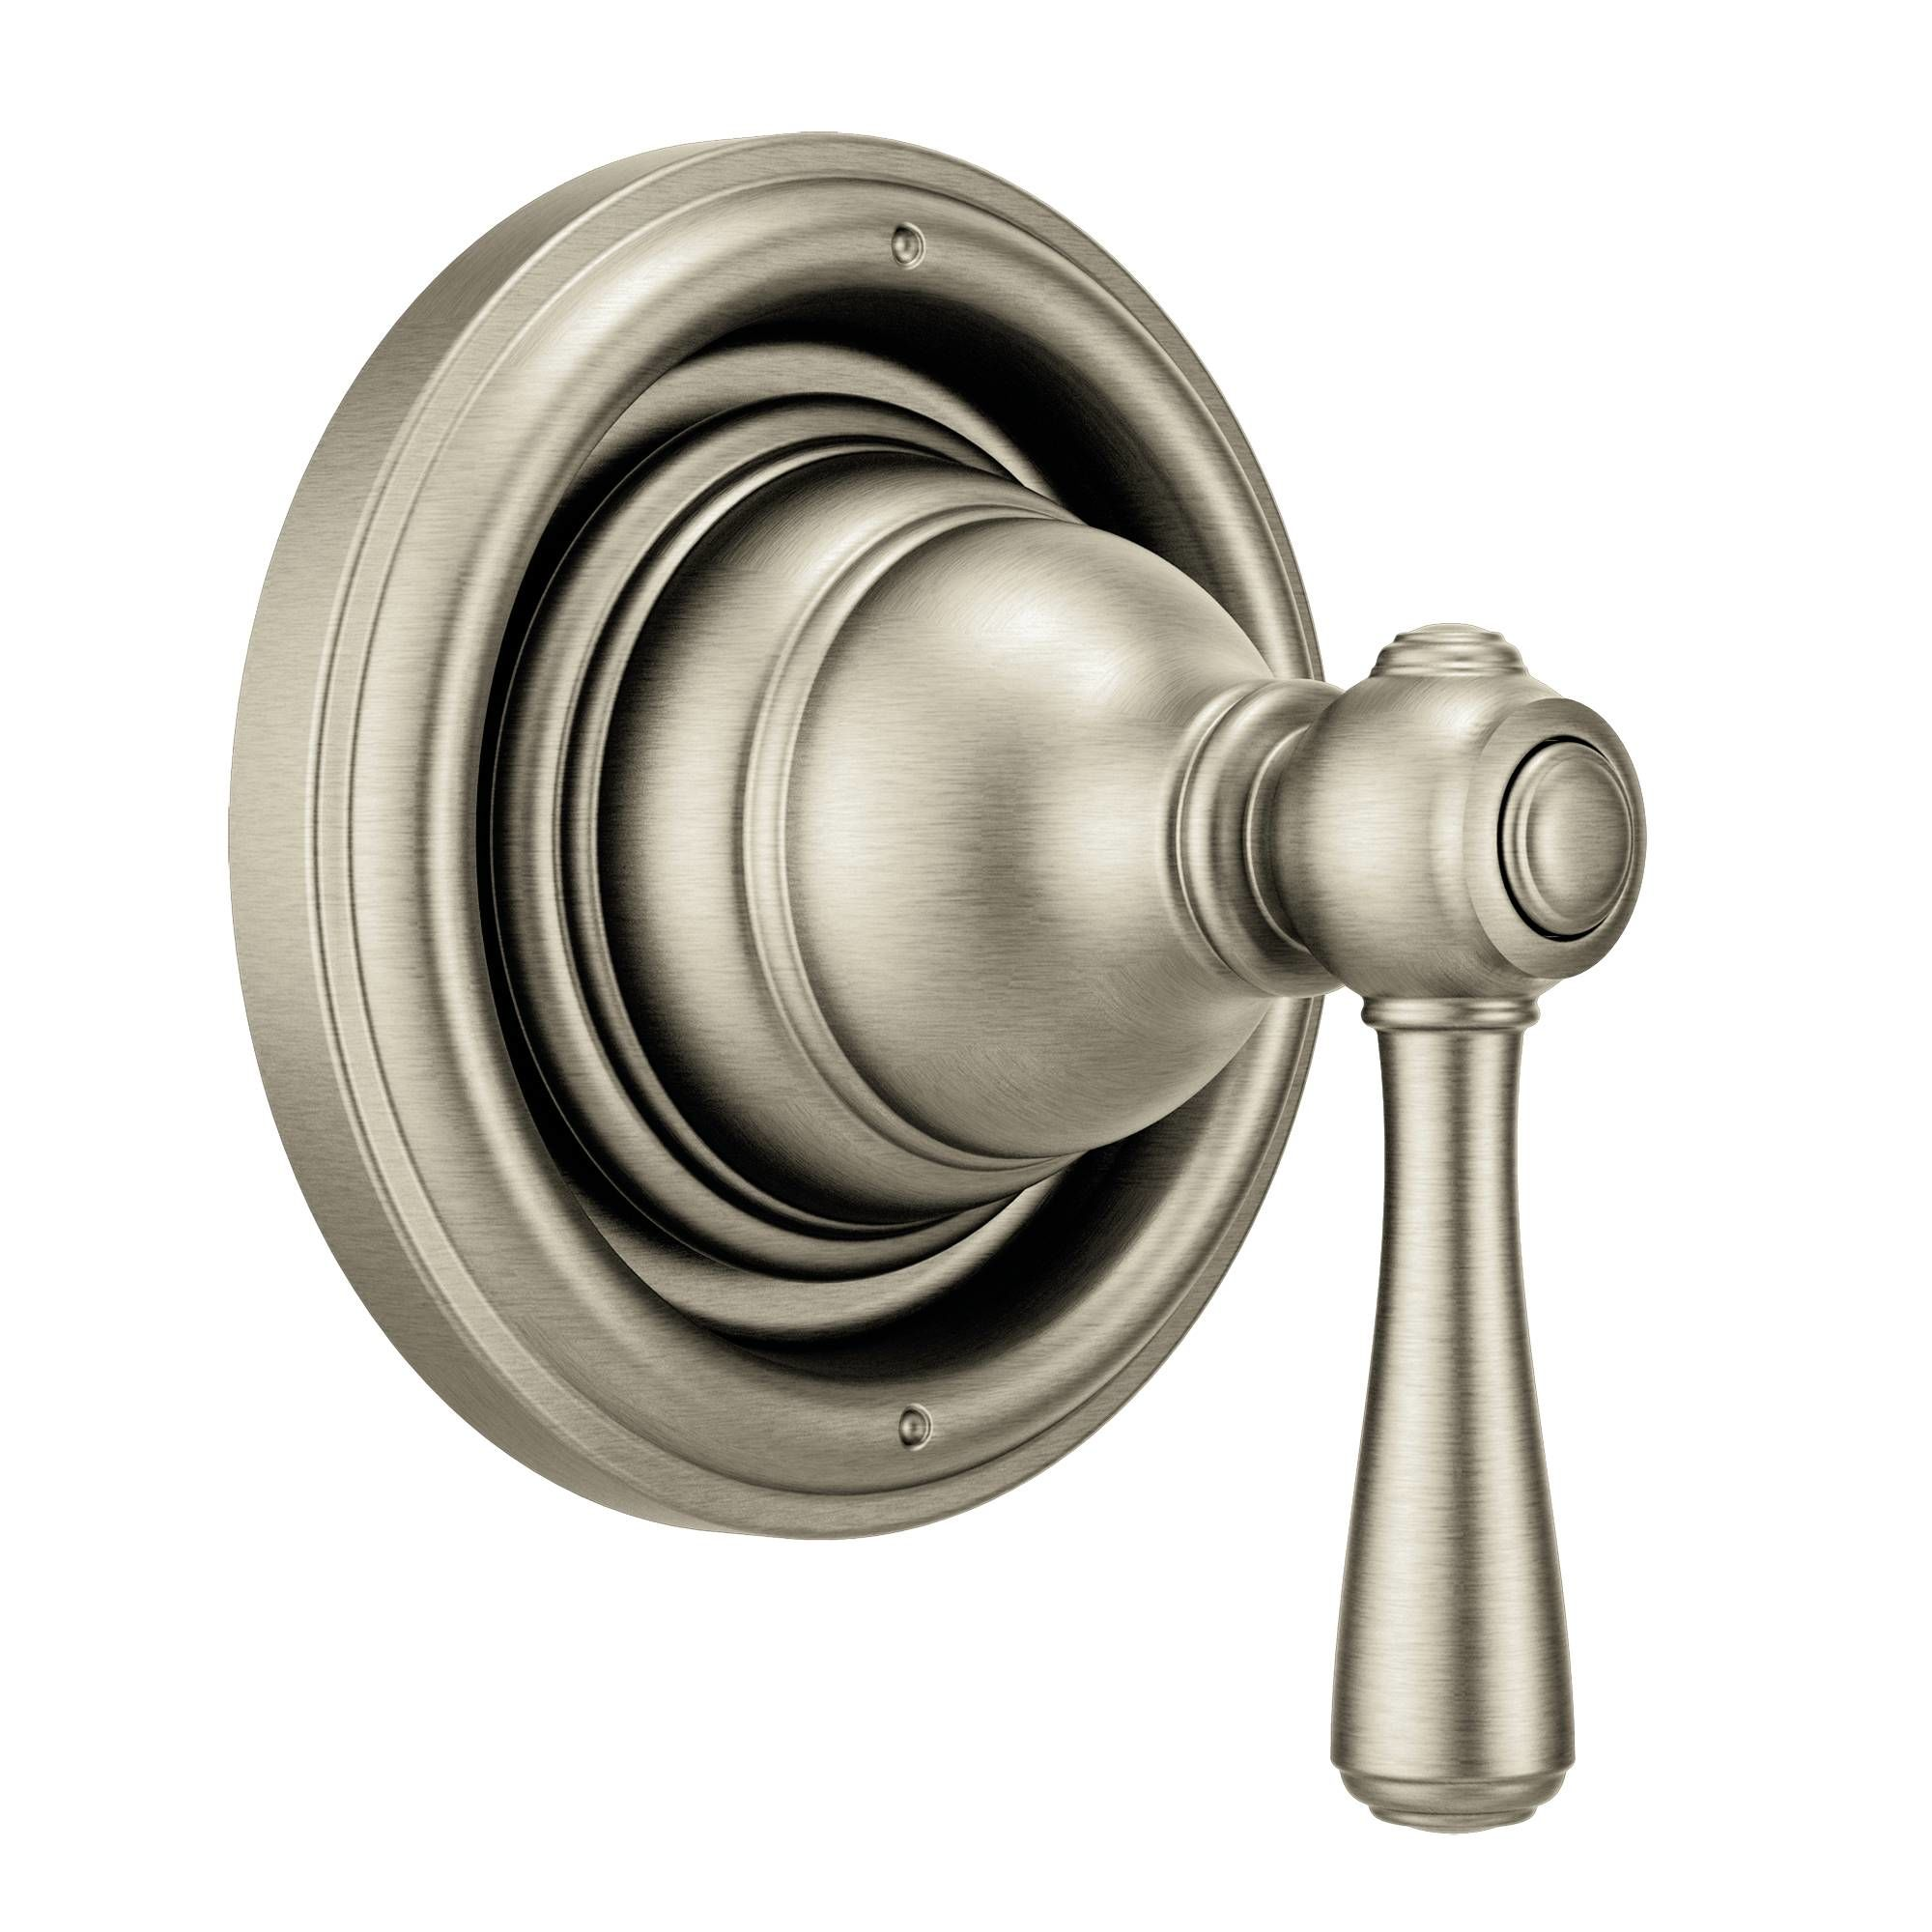 Moen 535BN Brushed Nickel Pressure Balanced Shower System With Shower Head,  Integrated Volume Control, Diverter, And Hand Shower From The Kingsley ...